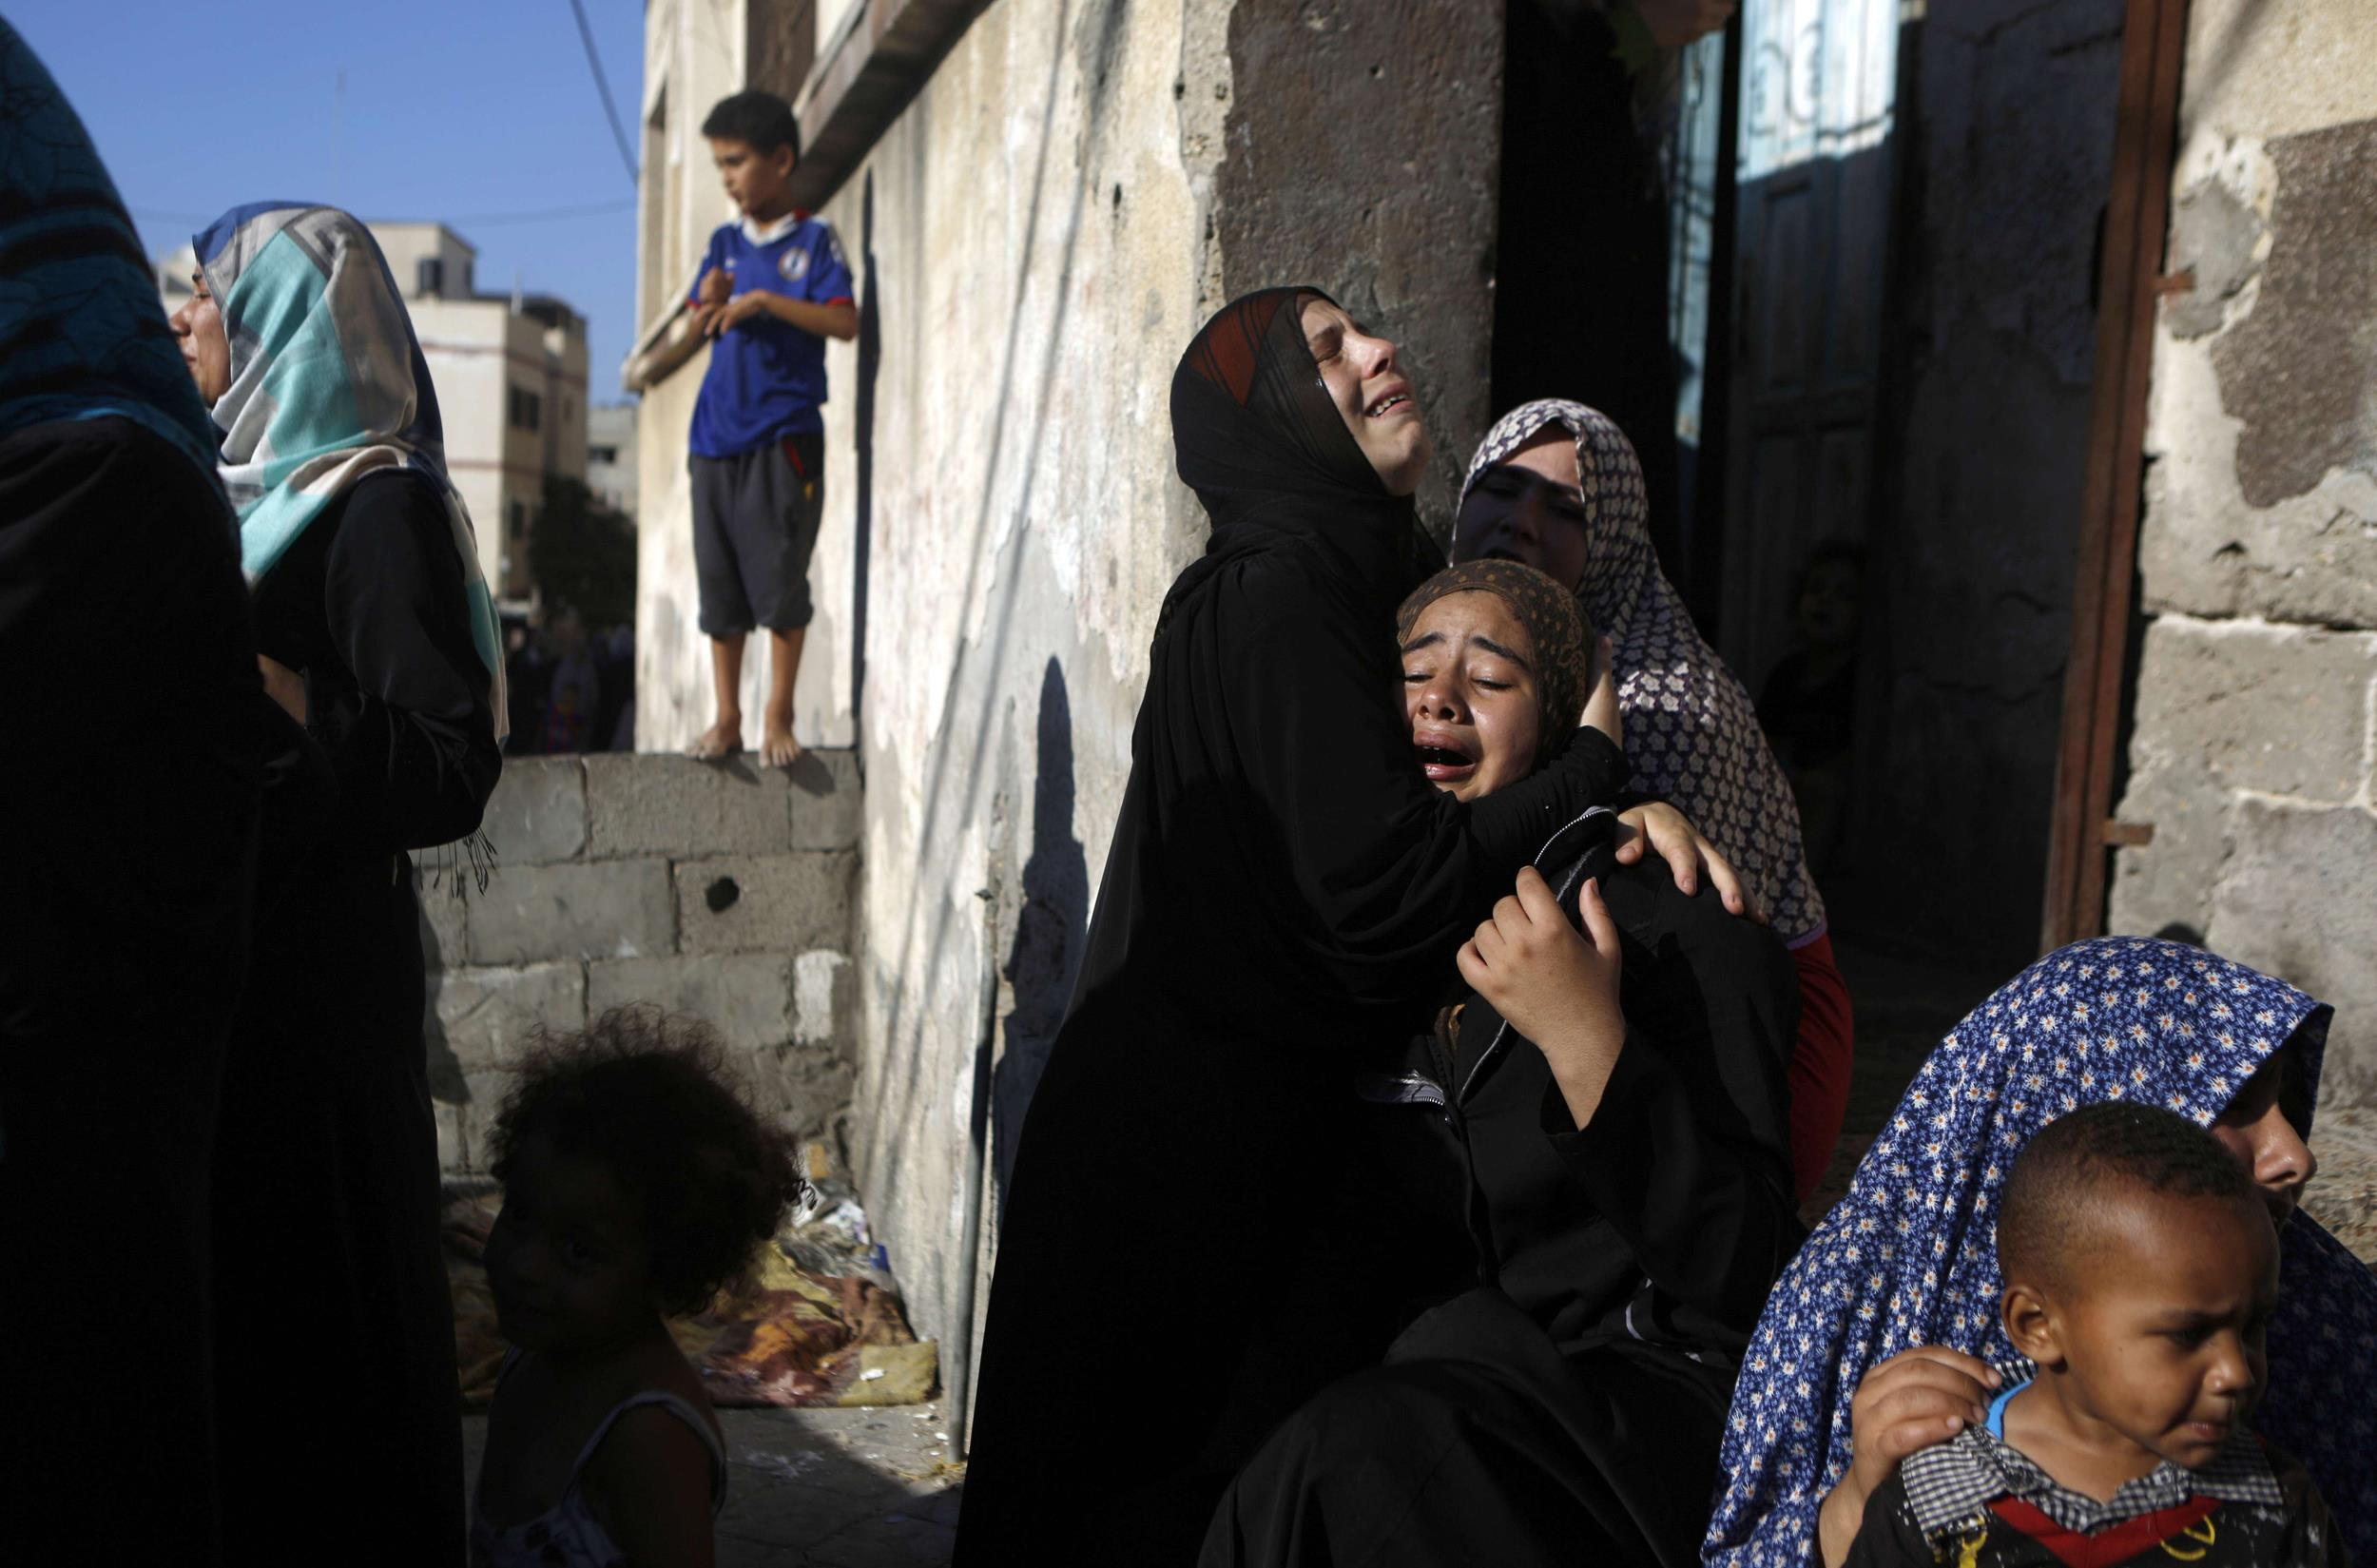 Image: Palestinian women react during the funeral of four boys, all from the Bakr family, killed during Israeli shelling in Gaza City on July 16, 2014.